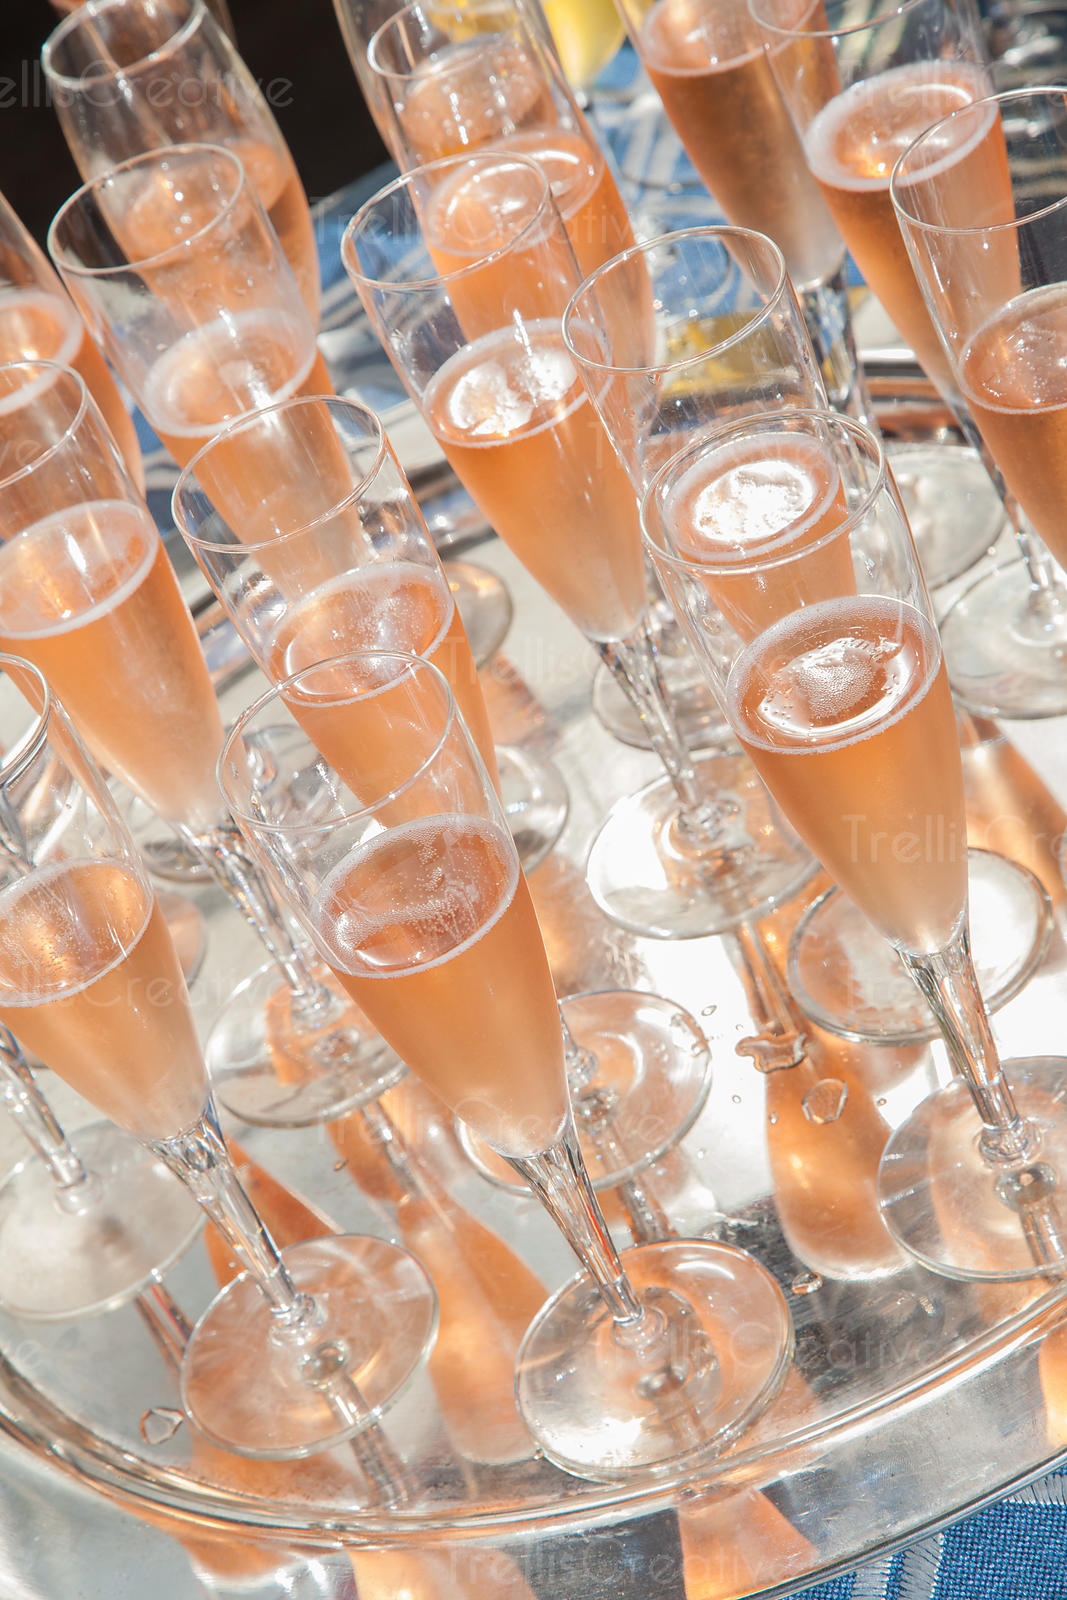 A silver tray with glasses of rose sparkling wine